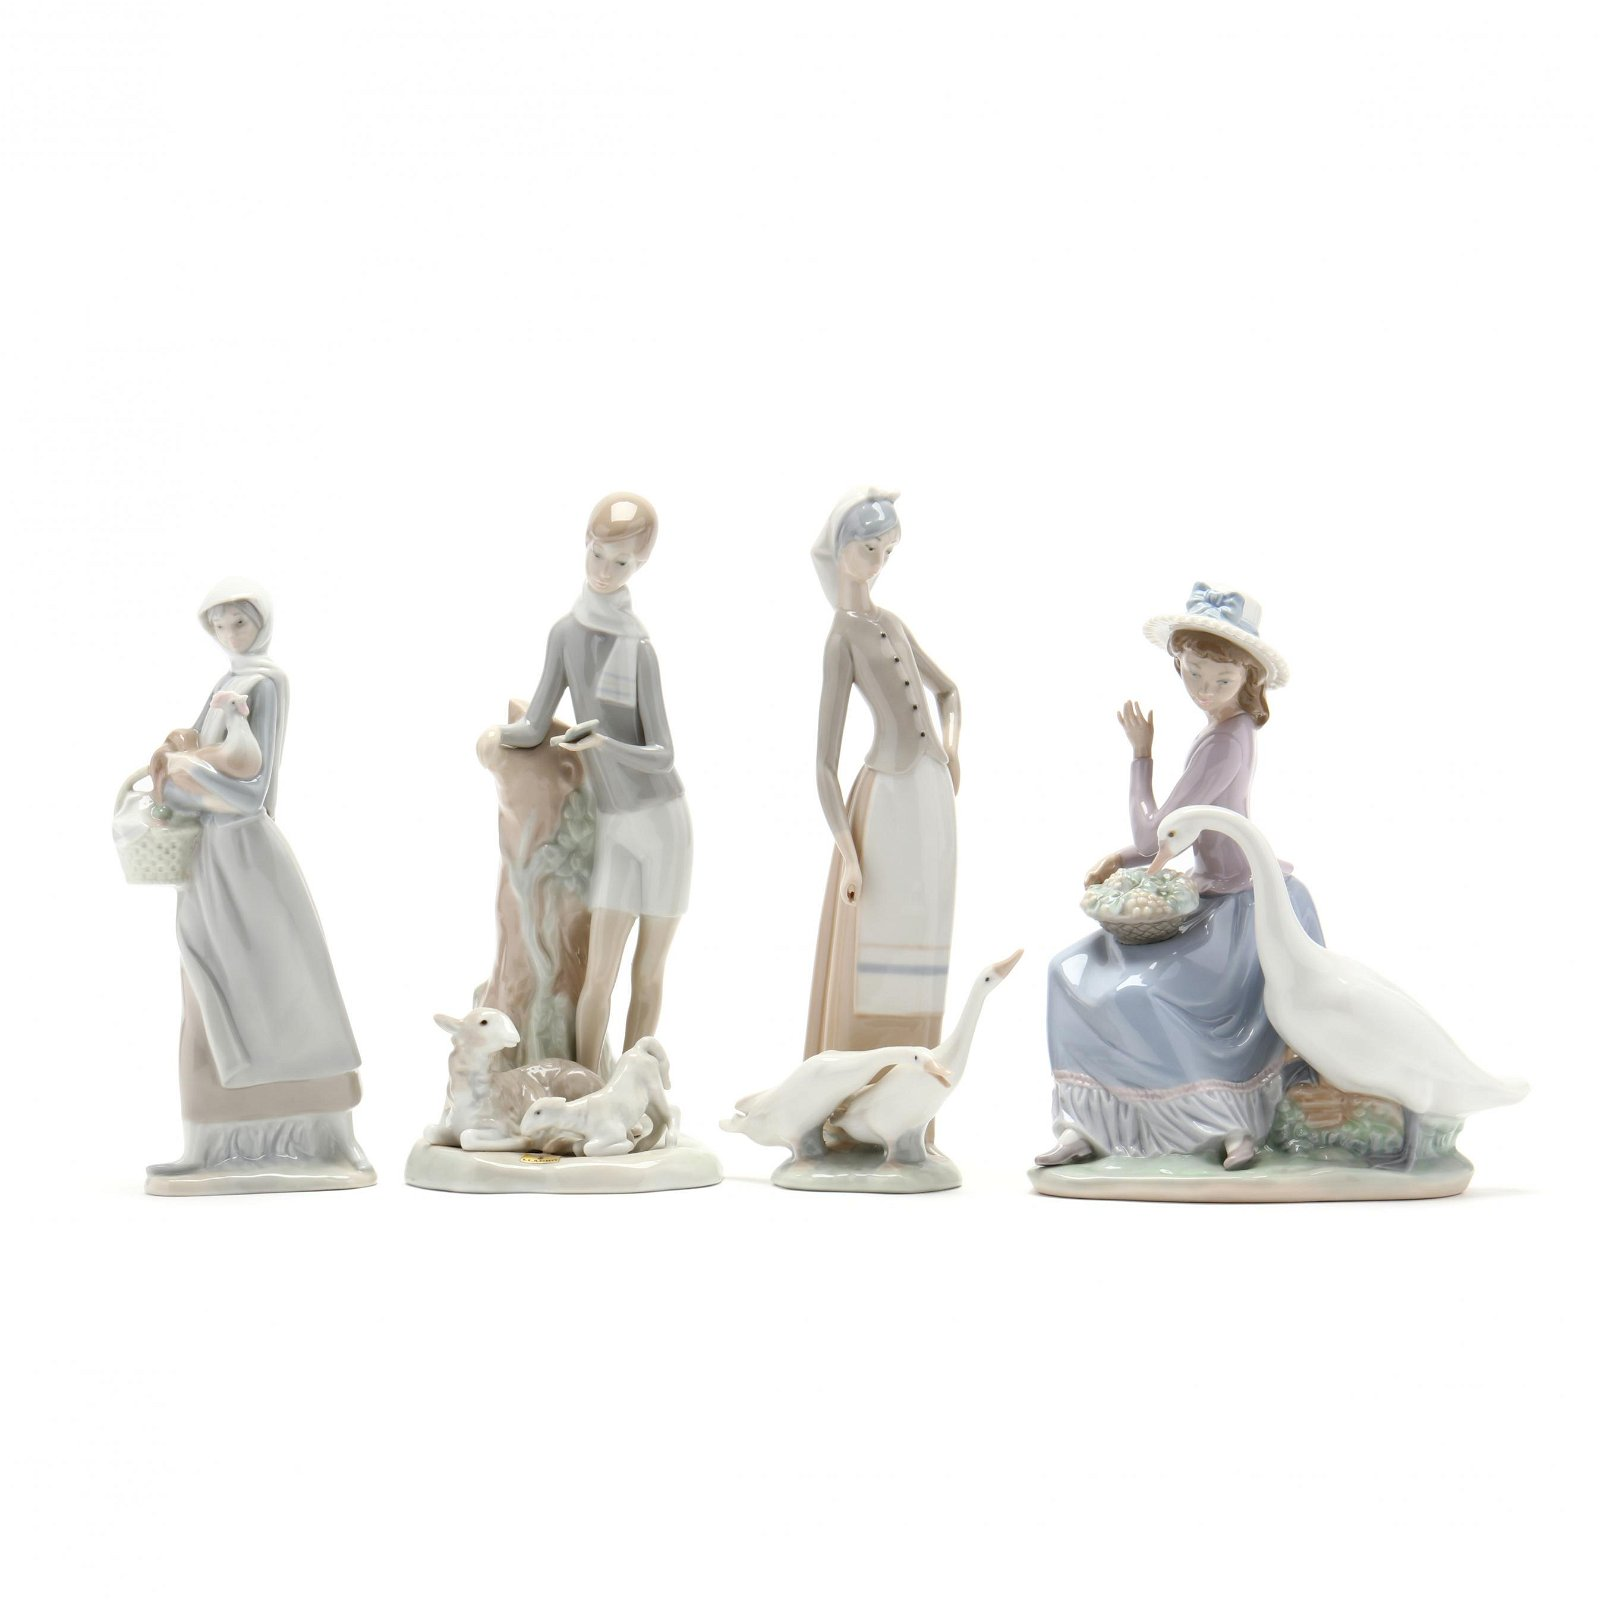 Four Lladro Porcelain Figures with Farm Animals